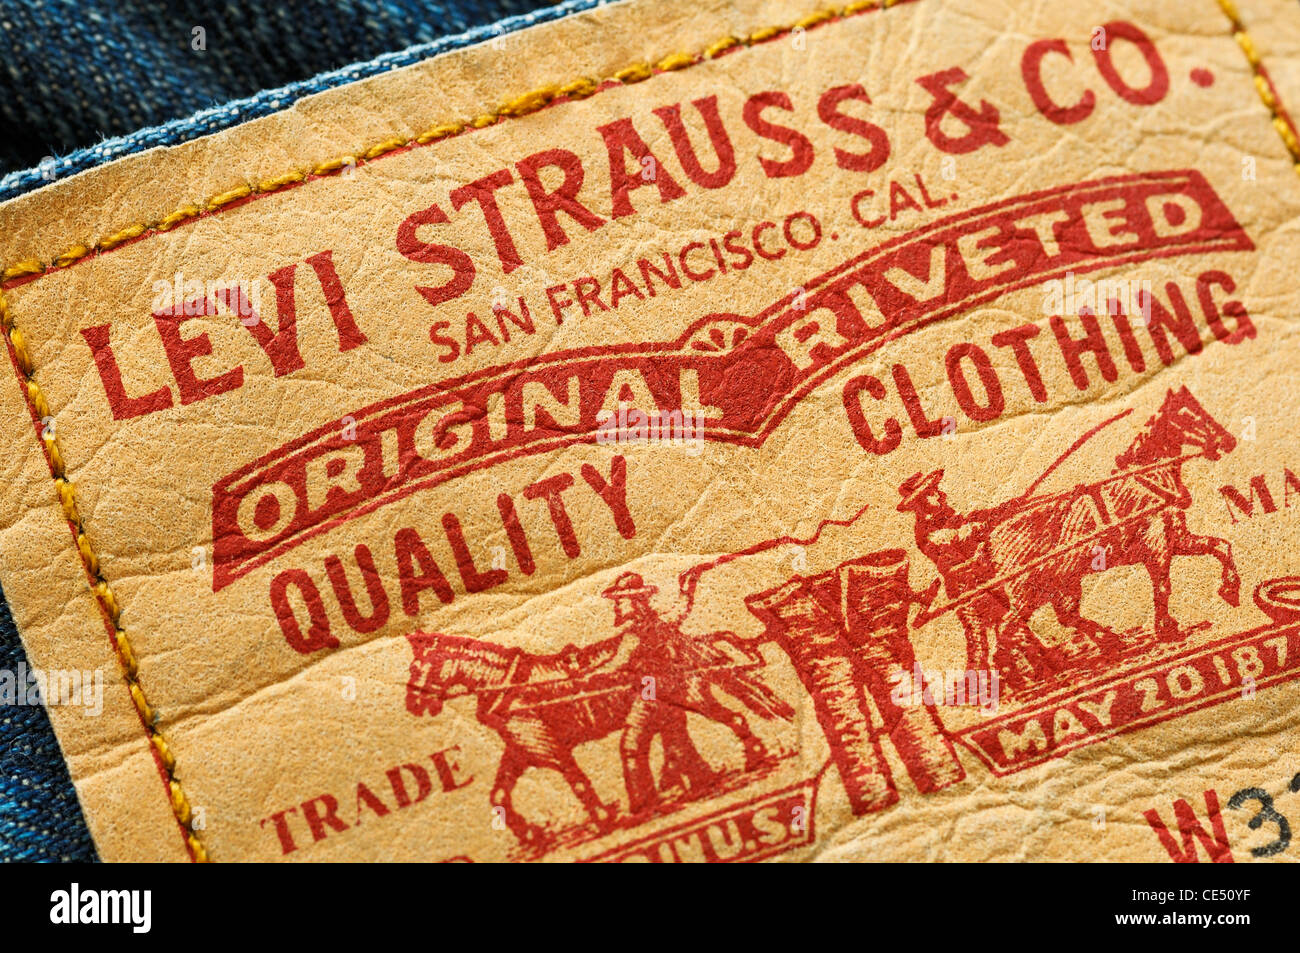 Levi Stauss & Co jeans label - Stock Image